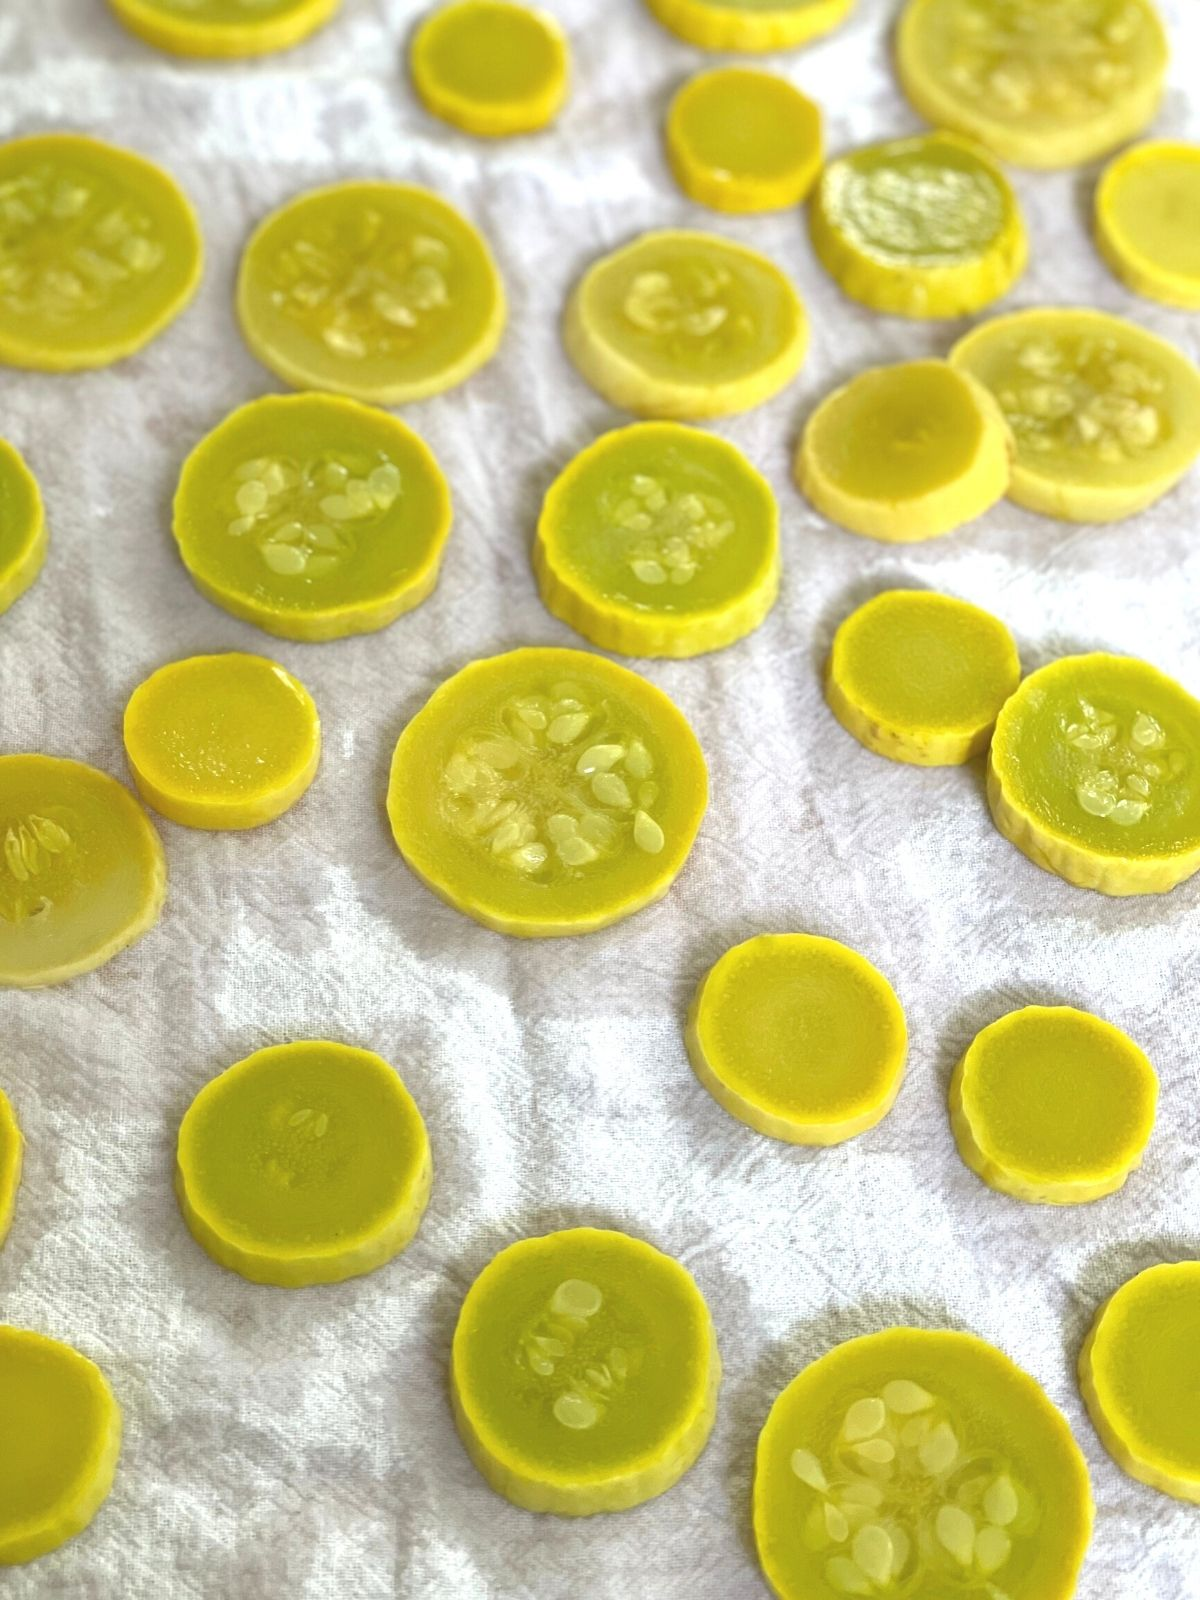 Blanched yellow squash slices drying on a tea towel.